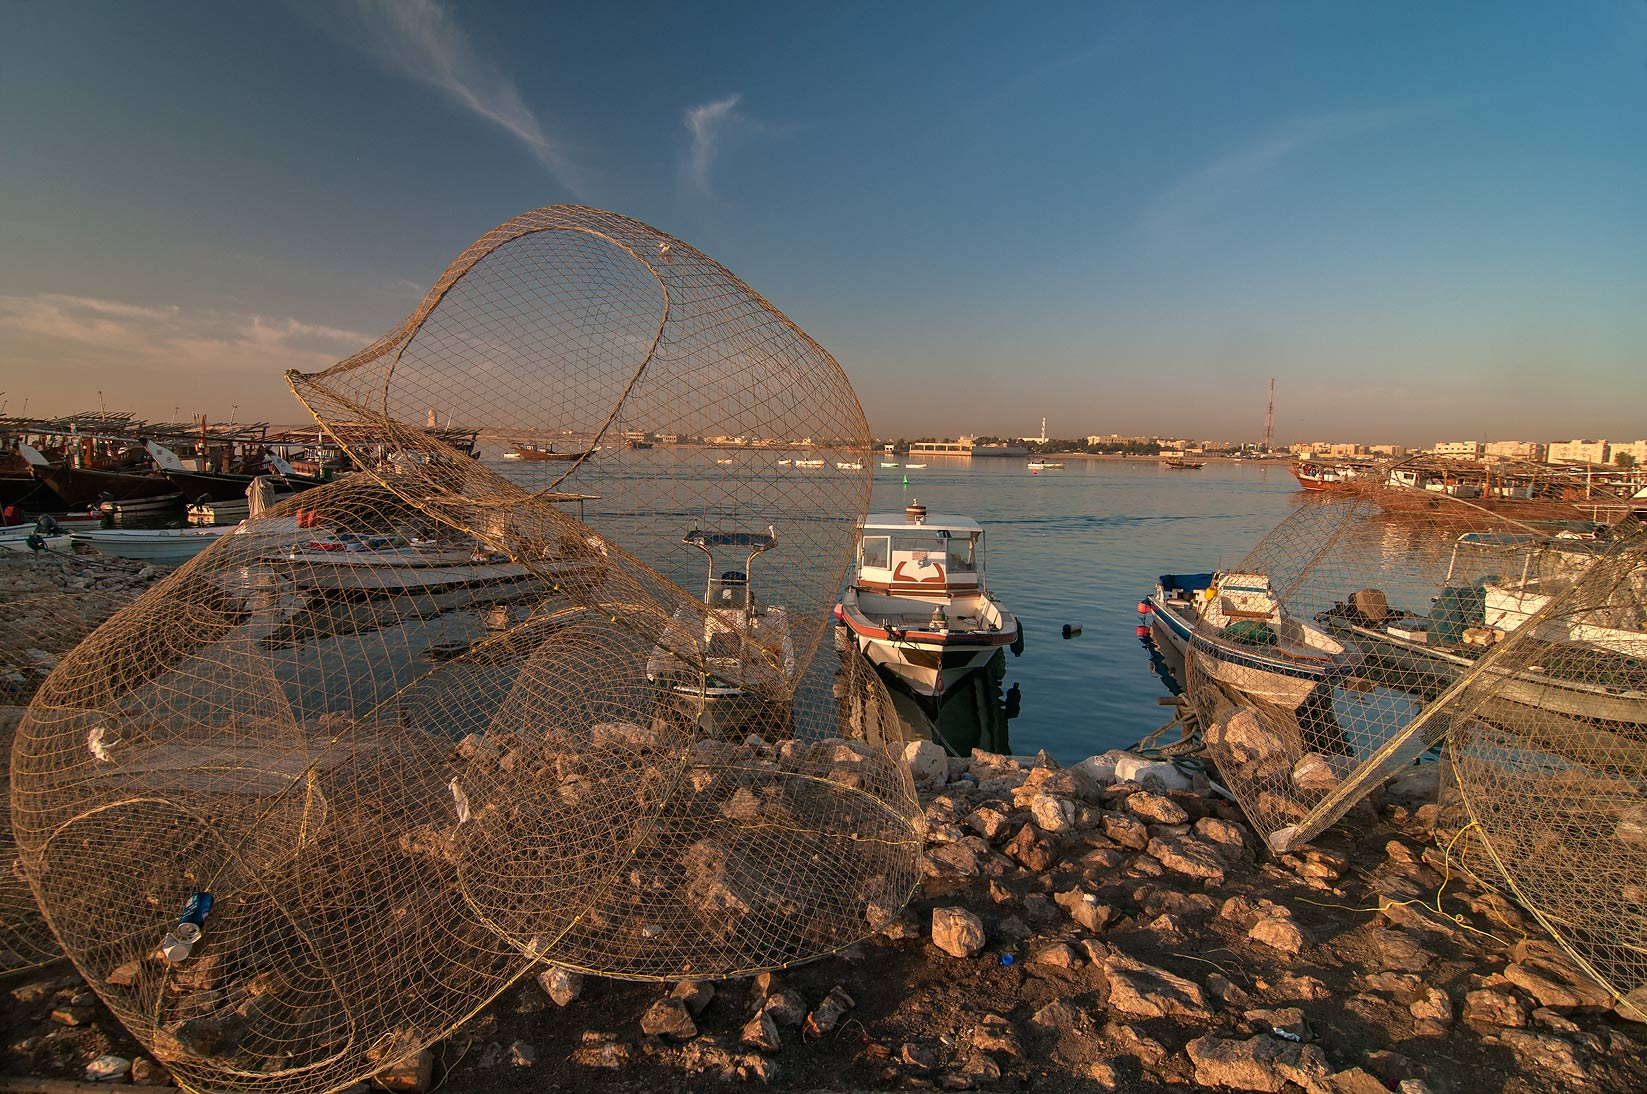 Domed wire fish traps (gargoor) on a pier in Al Wakra. Qatar